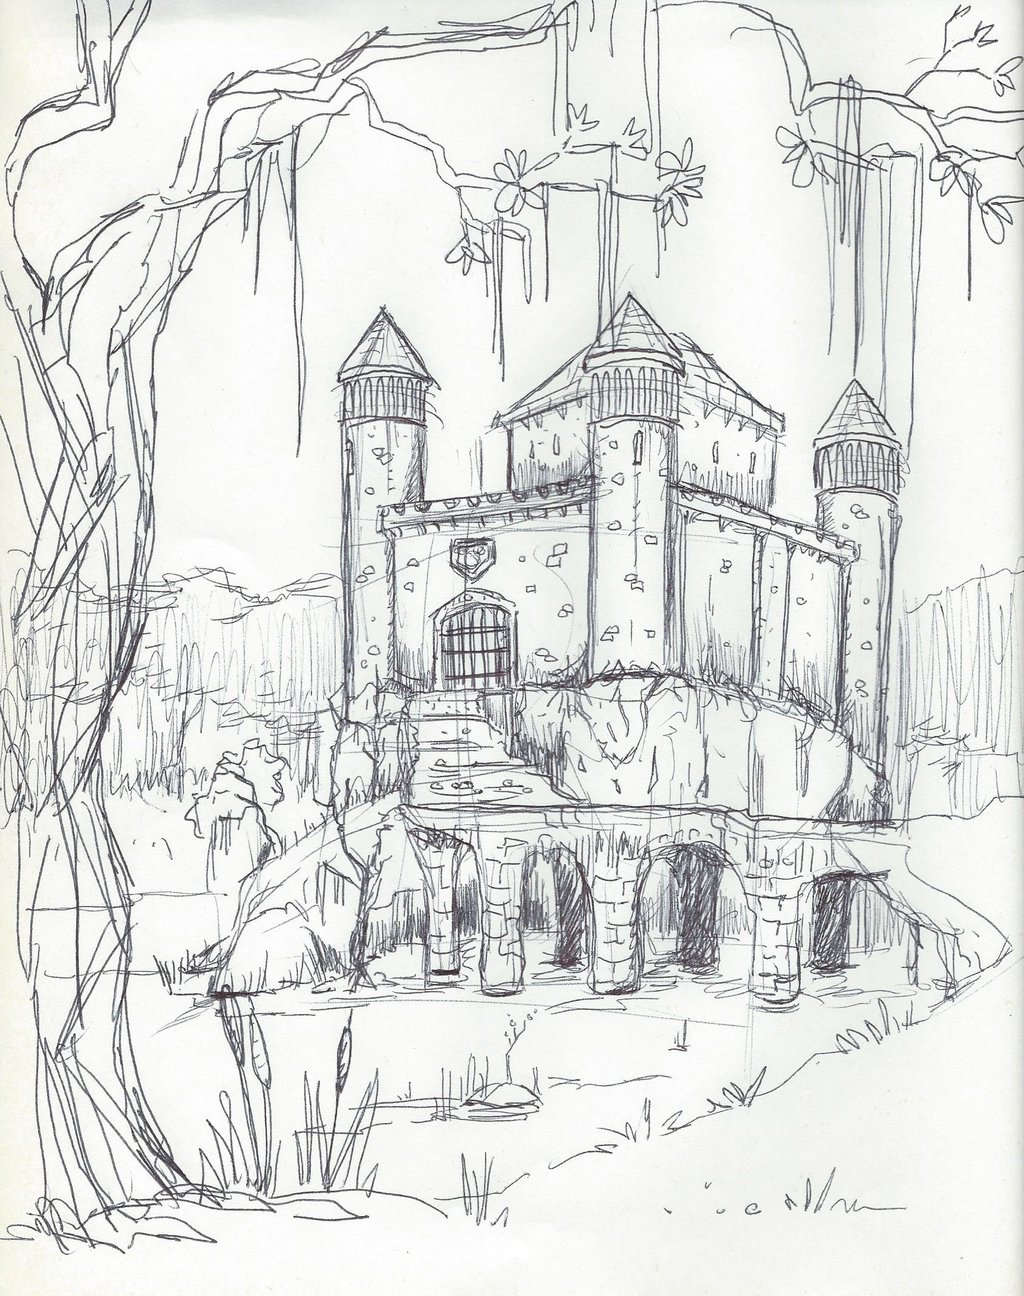 1024x1296 Castle In The Swamp, Ink Sketch By Emeryjs